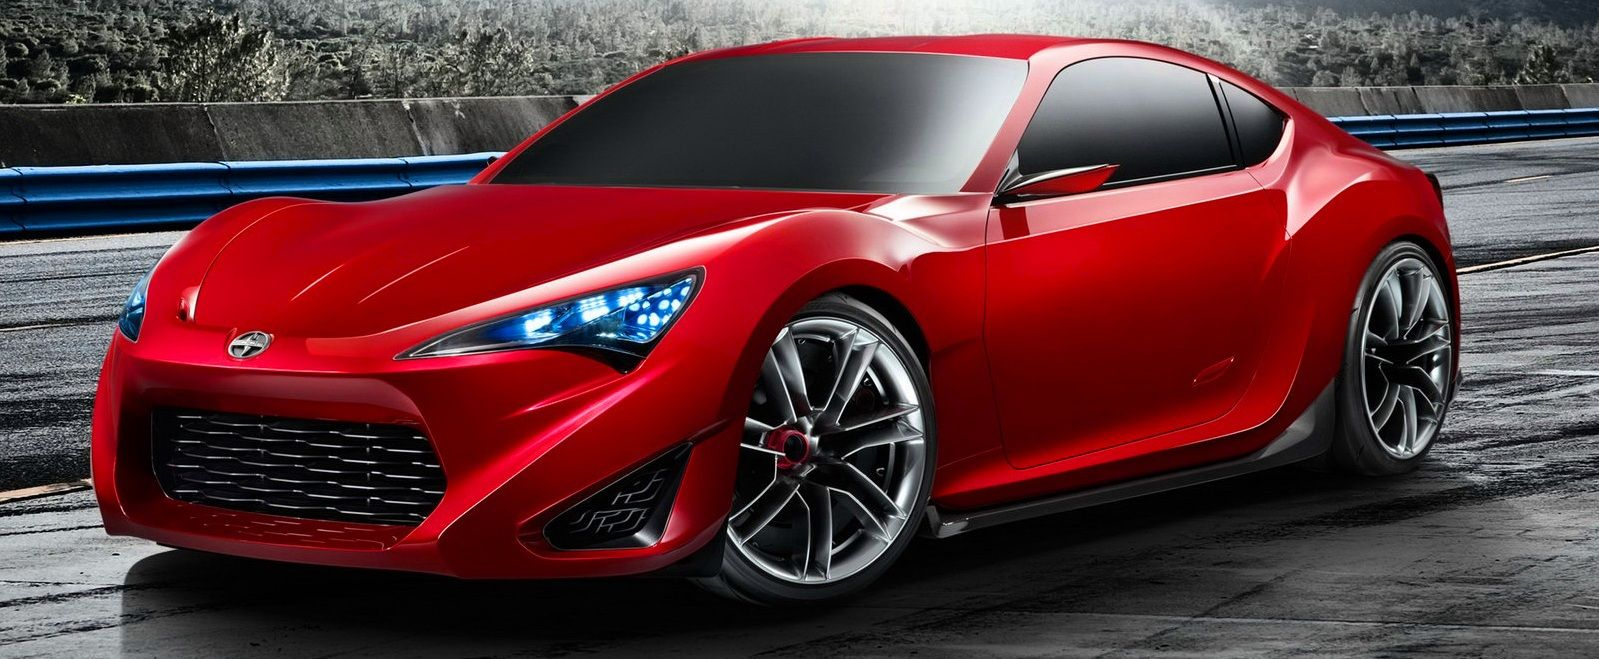 2015 Toyota Supra - Release Date and Price #cars | Toyota New Car ...